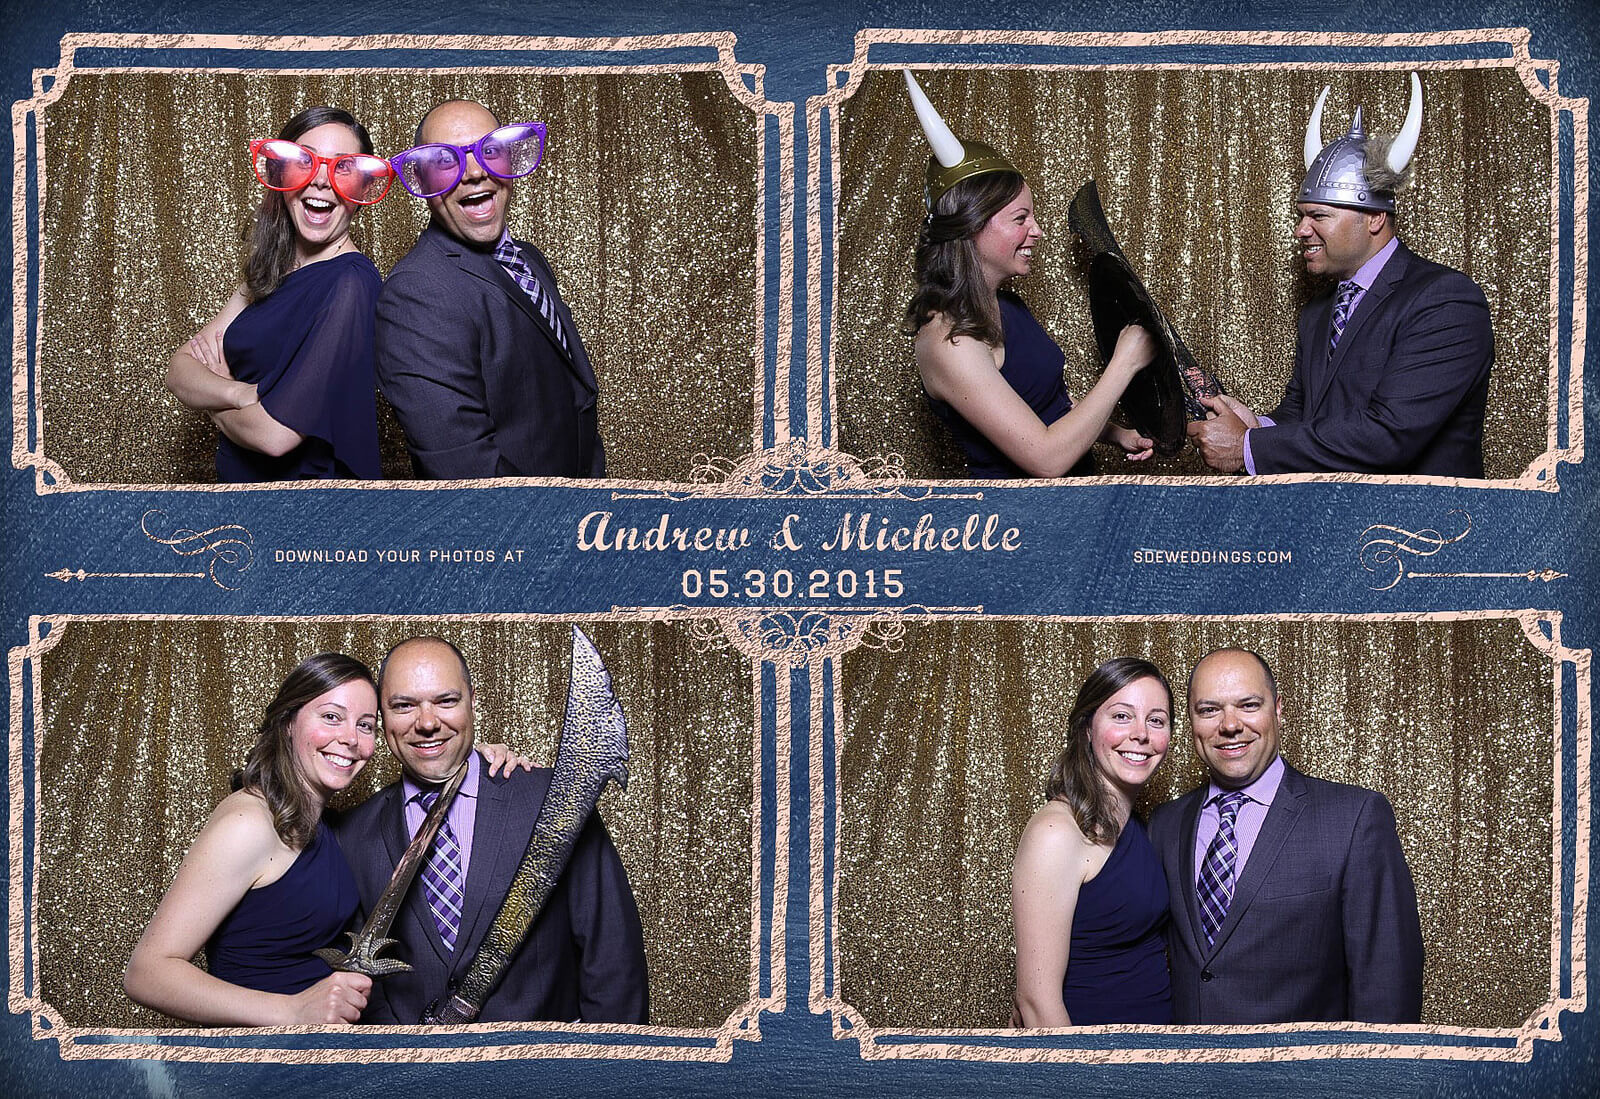 Toronto Police Wedding Photobooth at Peel Regional Police Association Banquet Hall 7